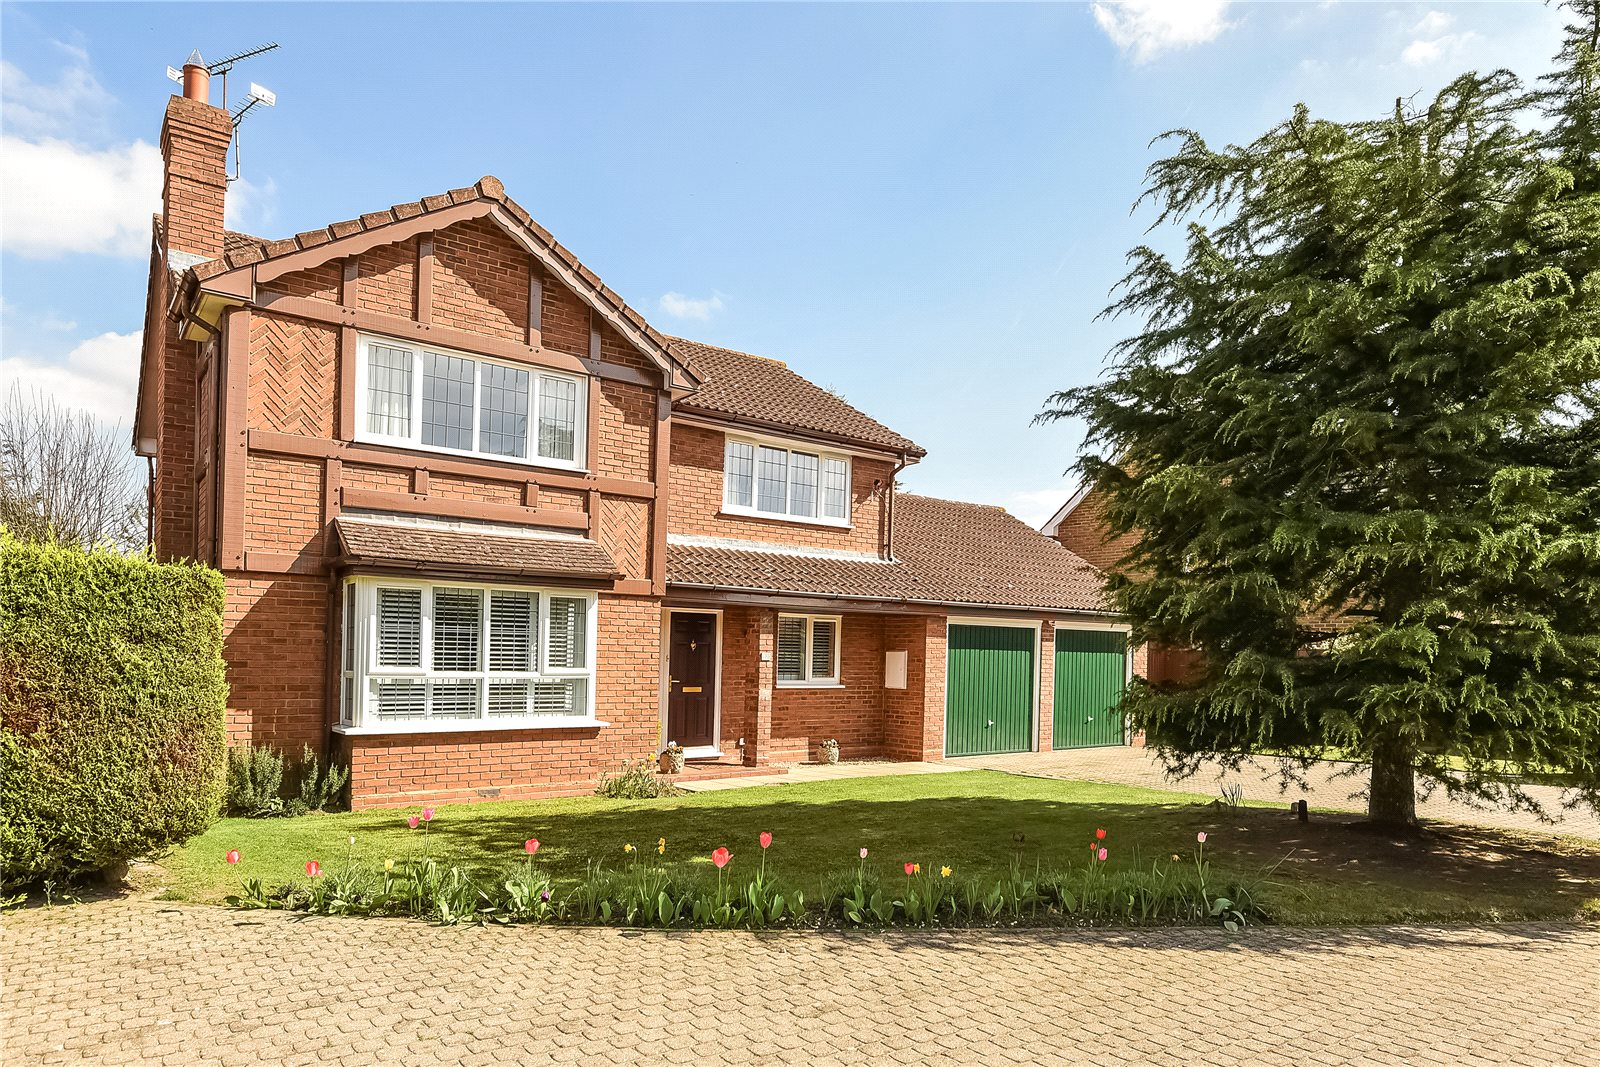 4 Bedrooms Detached House for sale in Bluebell Meadow, Winnersh, Wokingham, Berkshire, RG41